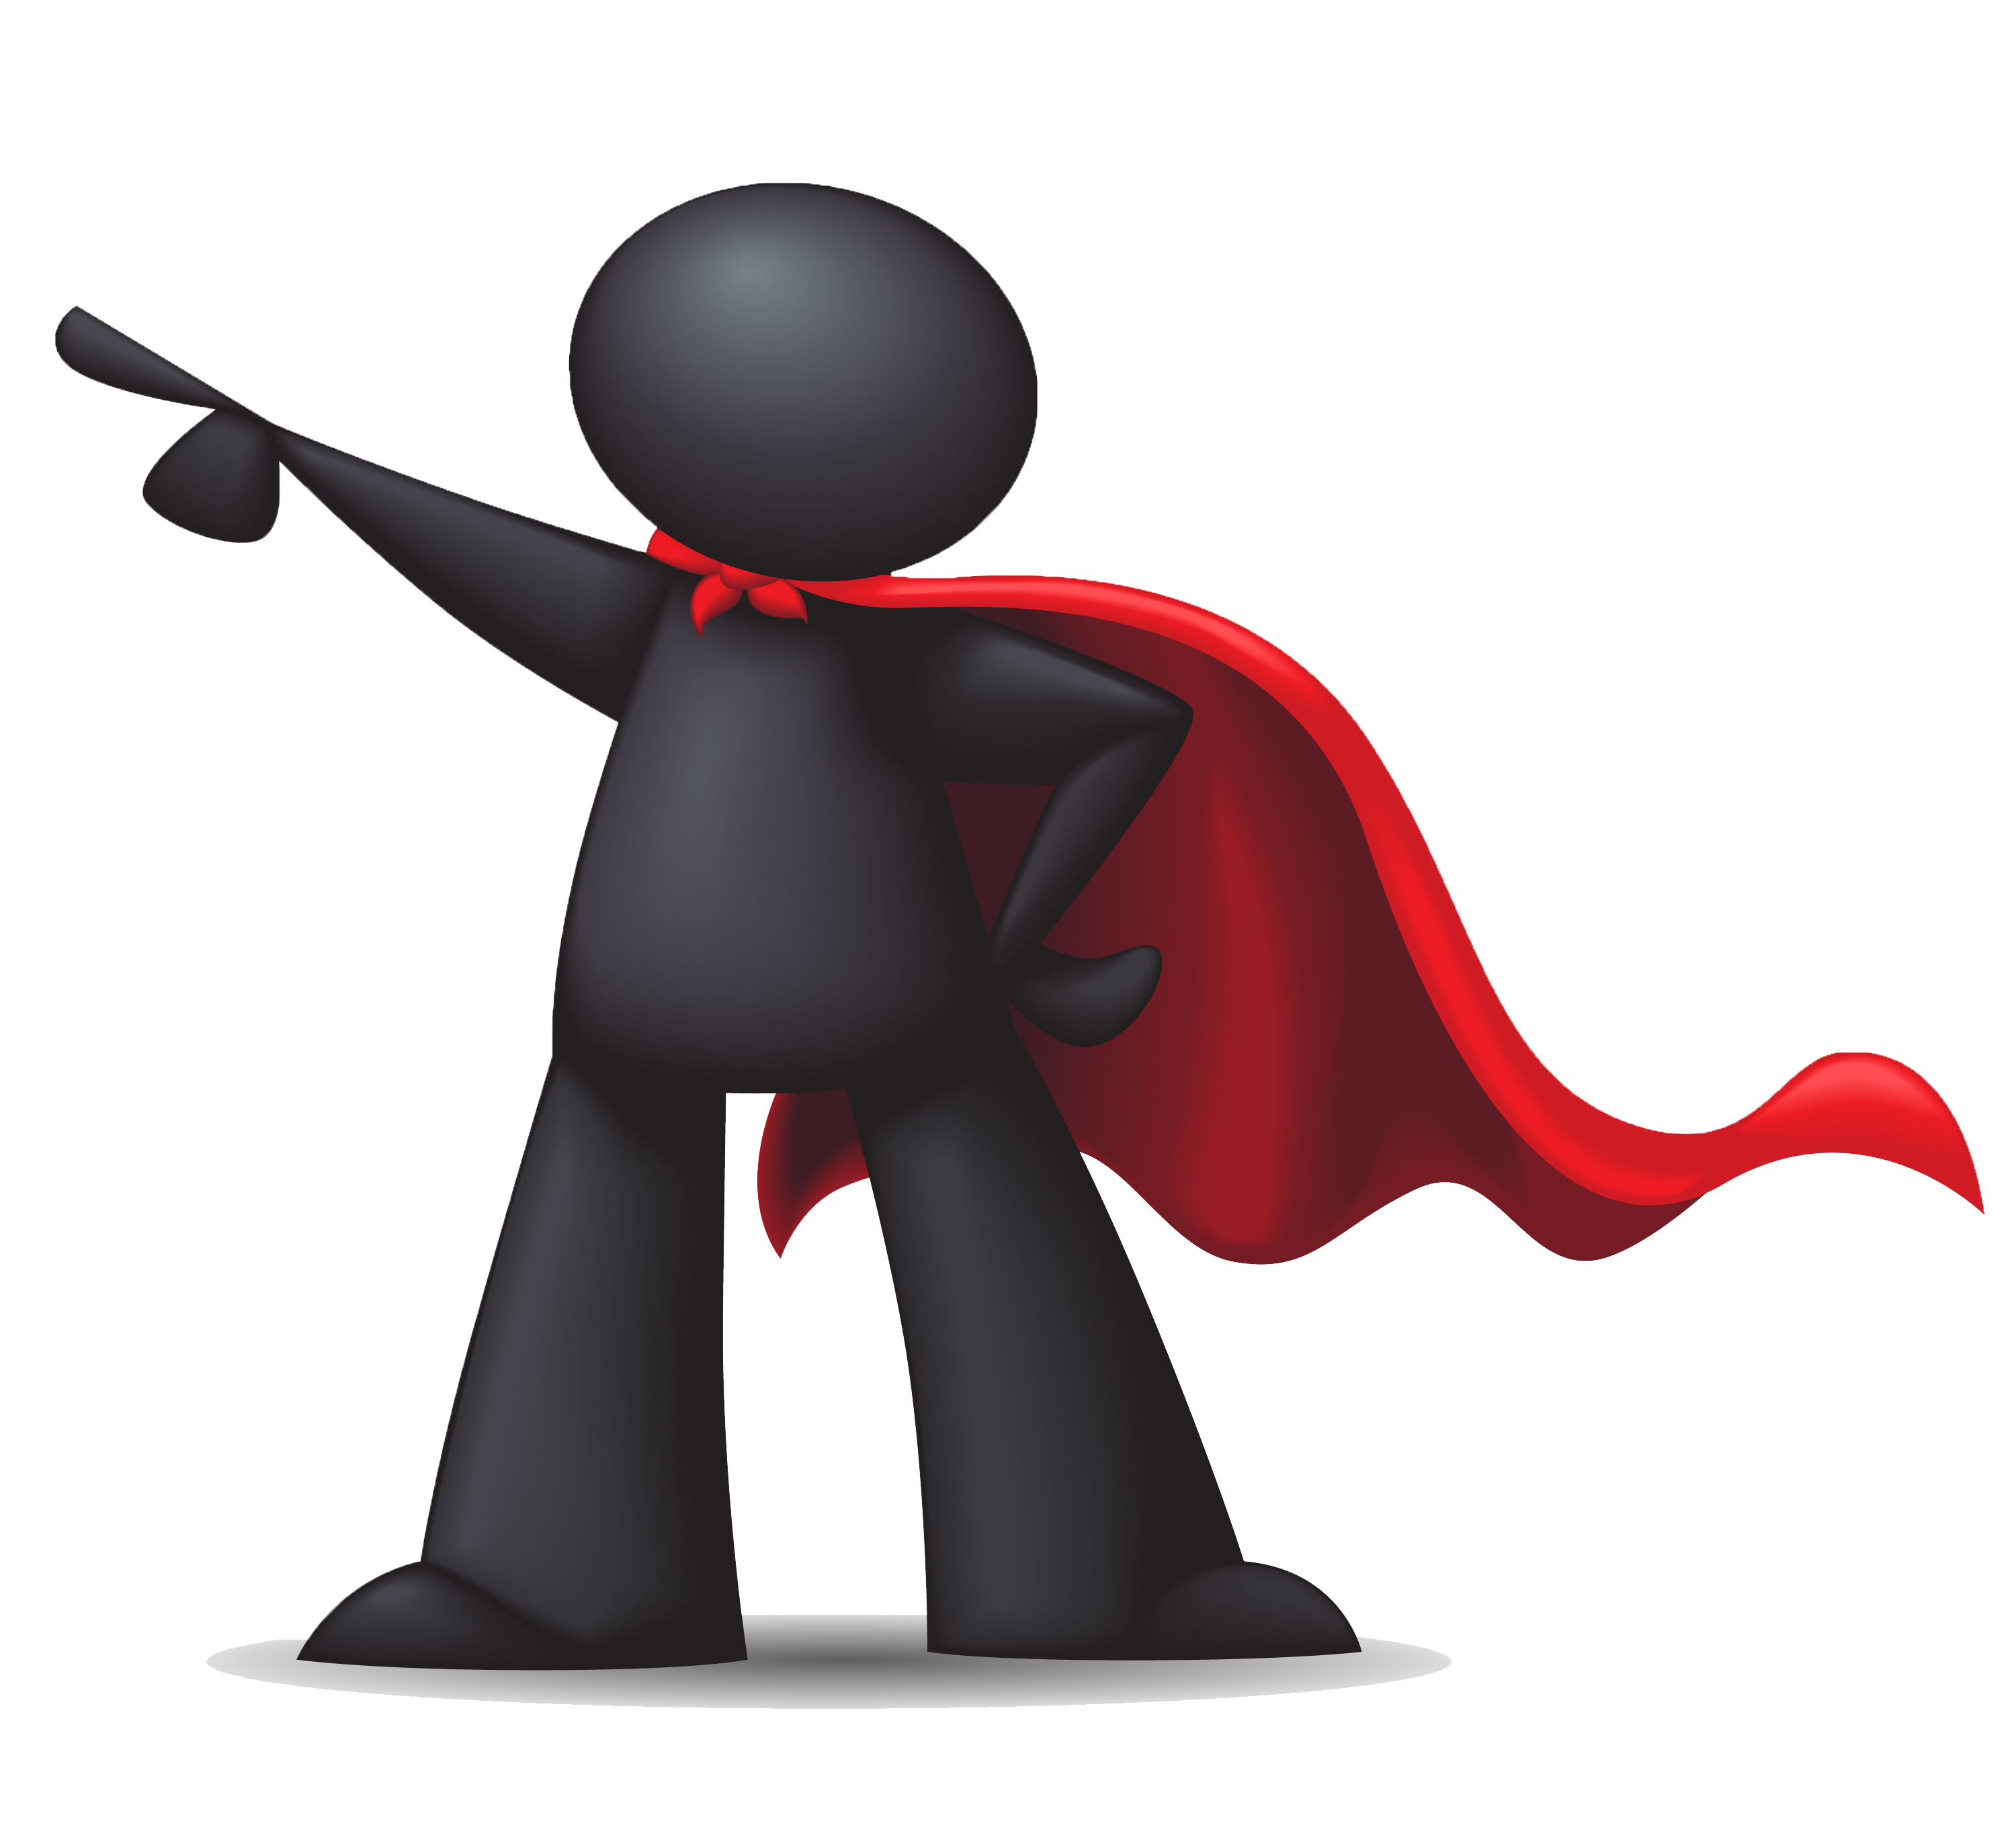 Leader clipart effective leadership. The behaviours of an